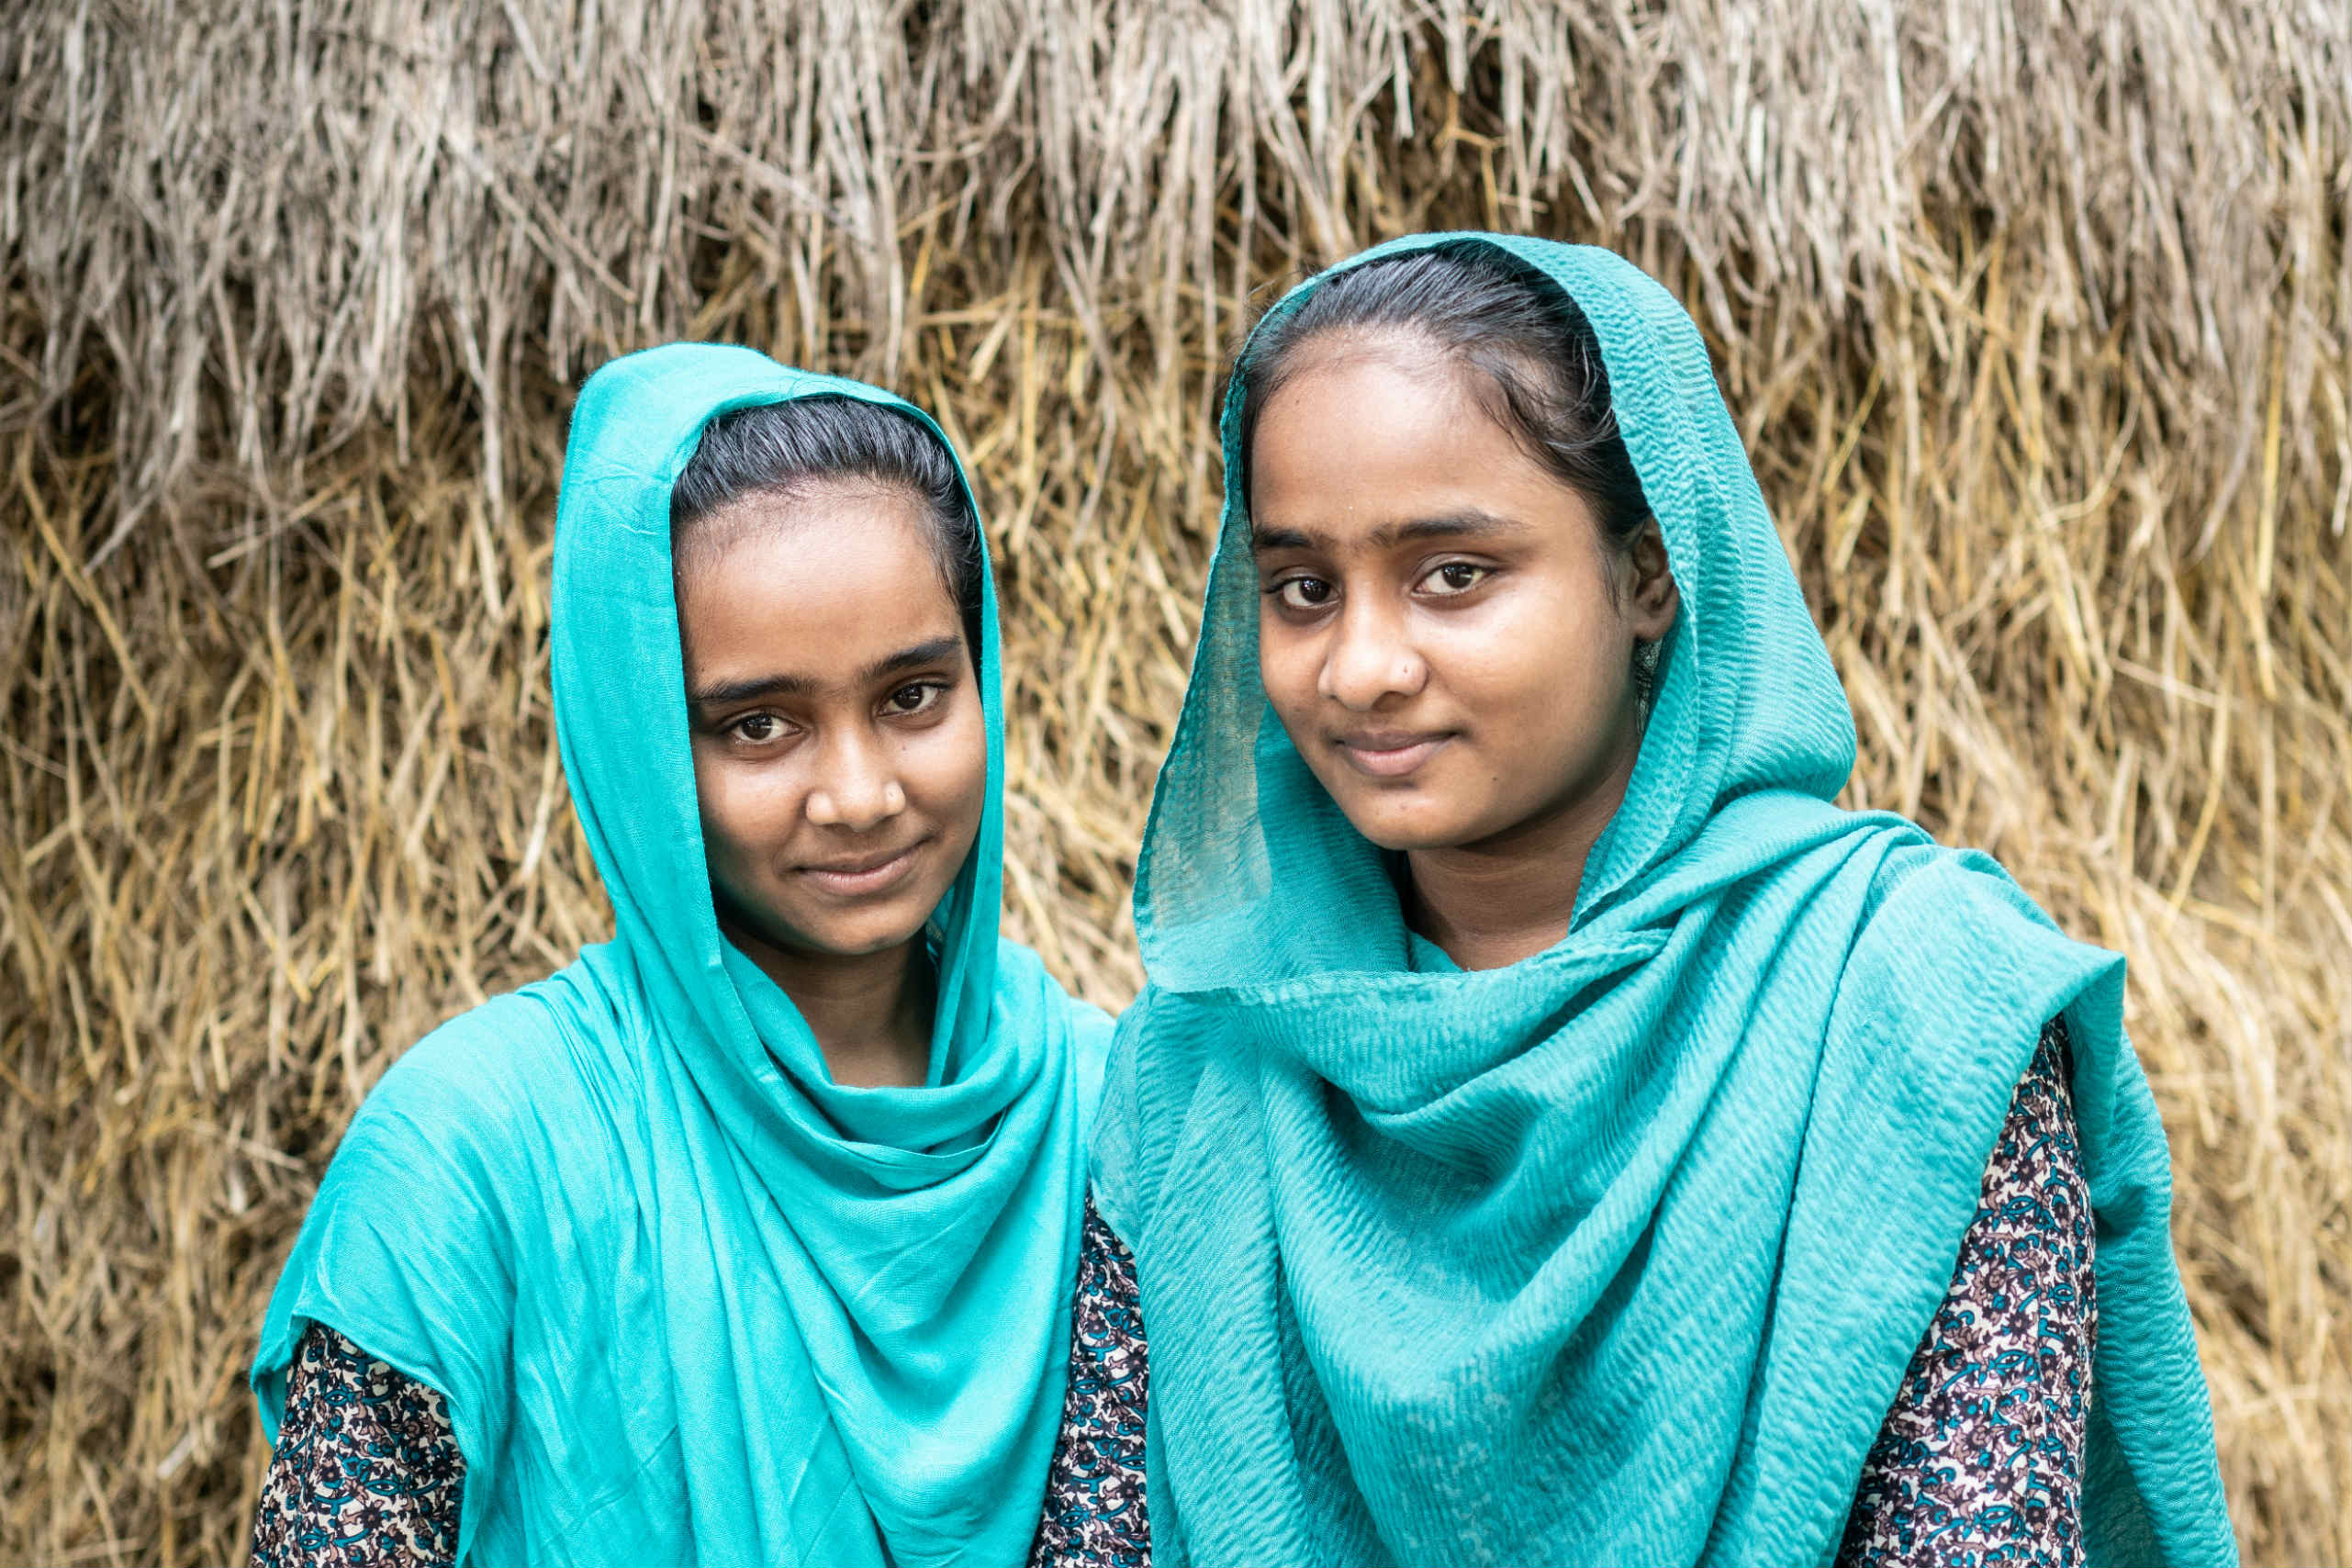 Runa, 17, stands with her sister Shuma, in their community in Sylhet, Bangladesh